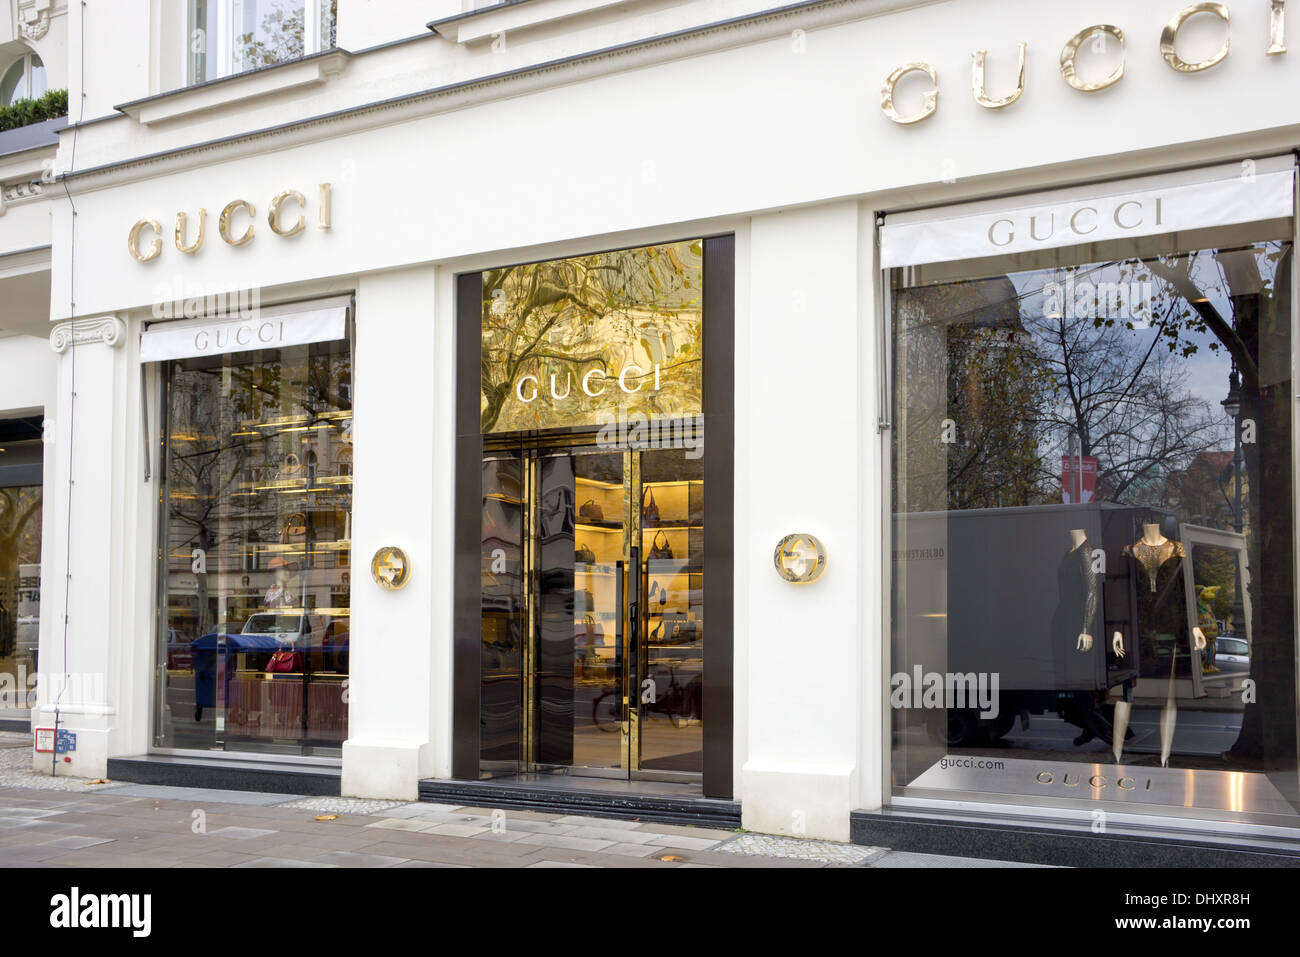 The fashion company Gucci is the biggest-selling Italian brand in the world. Gucci's elegant store in the central of Berlin. - Stock Image